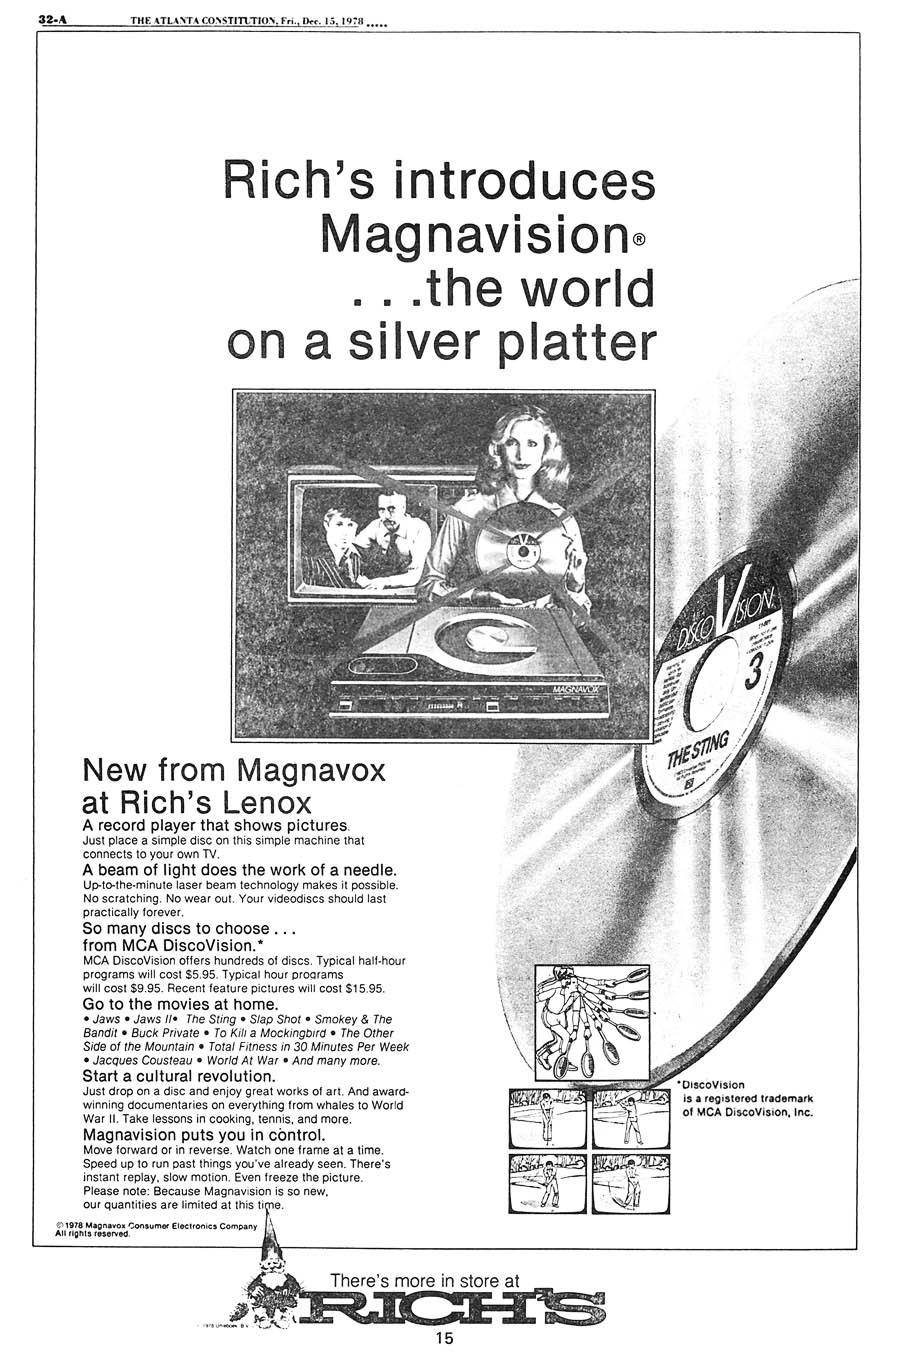 Rich's 1978 ad for Magnavision